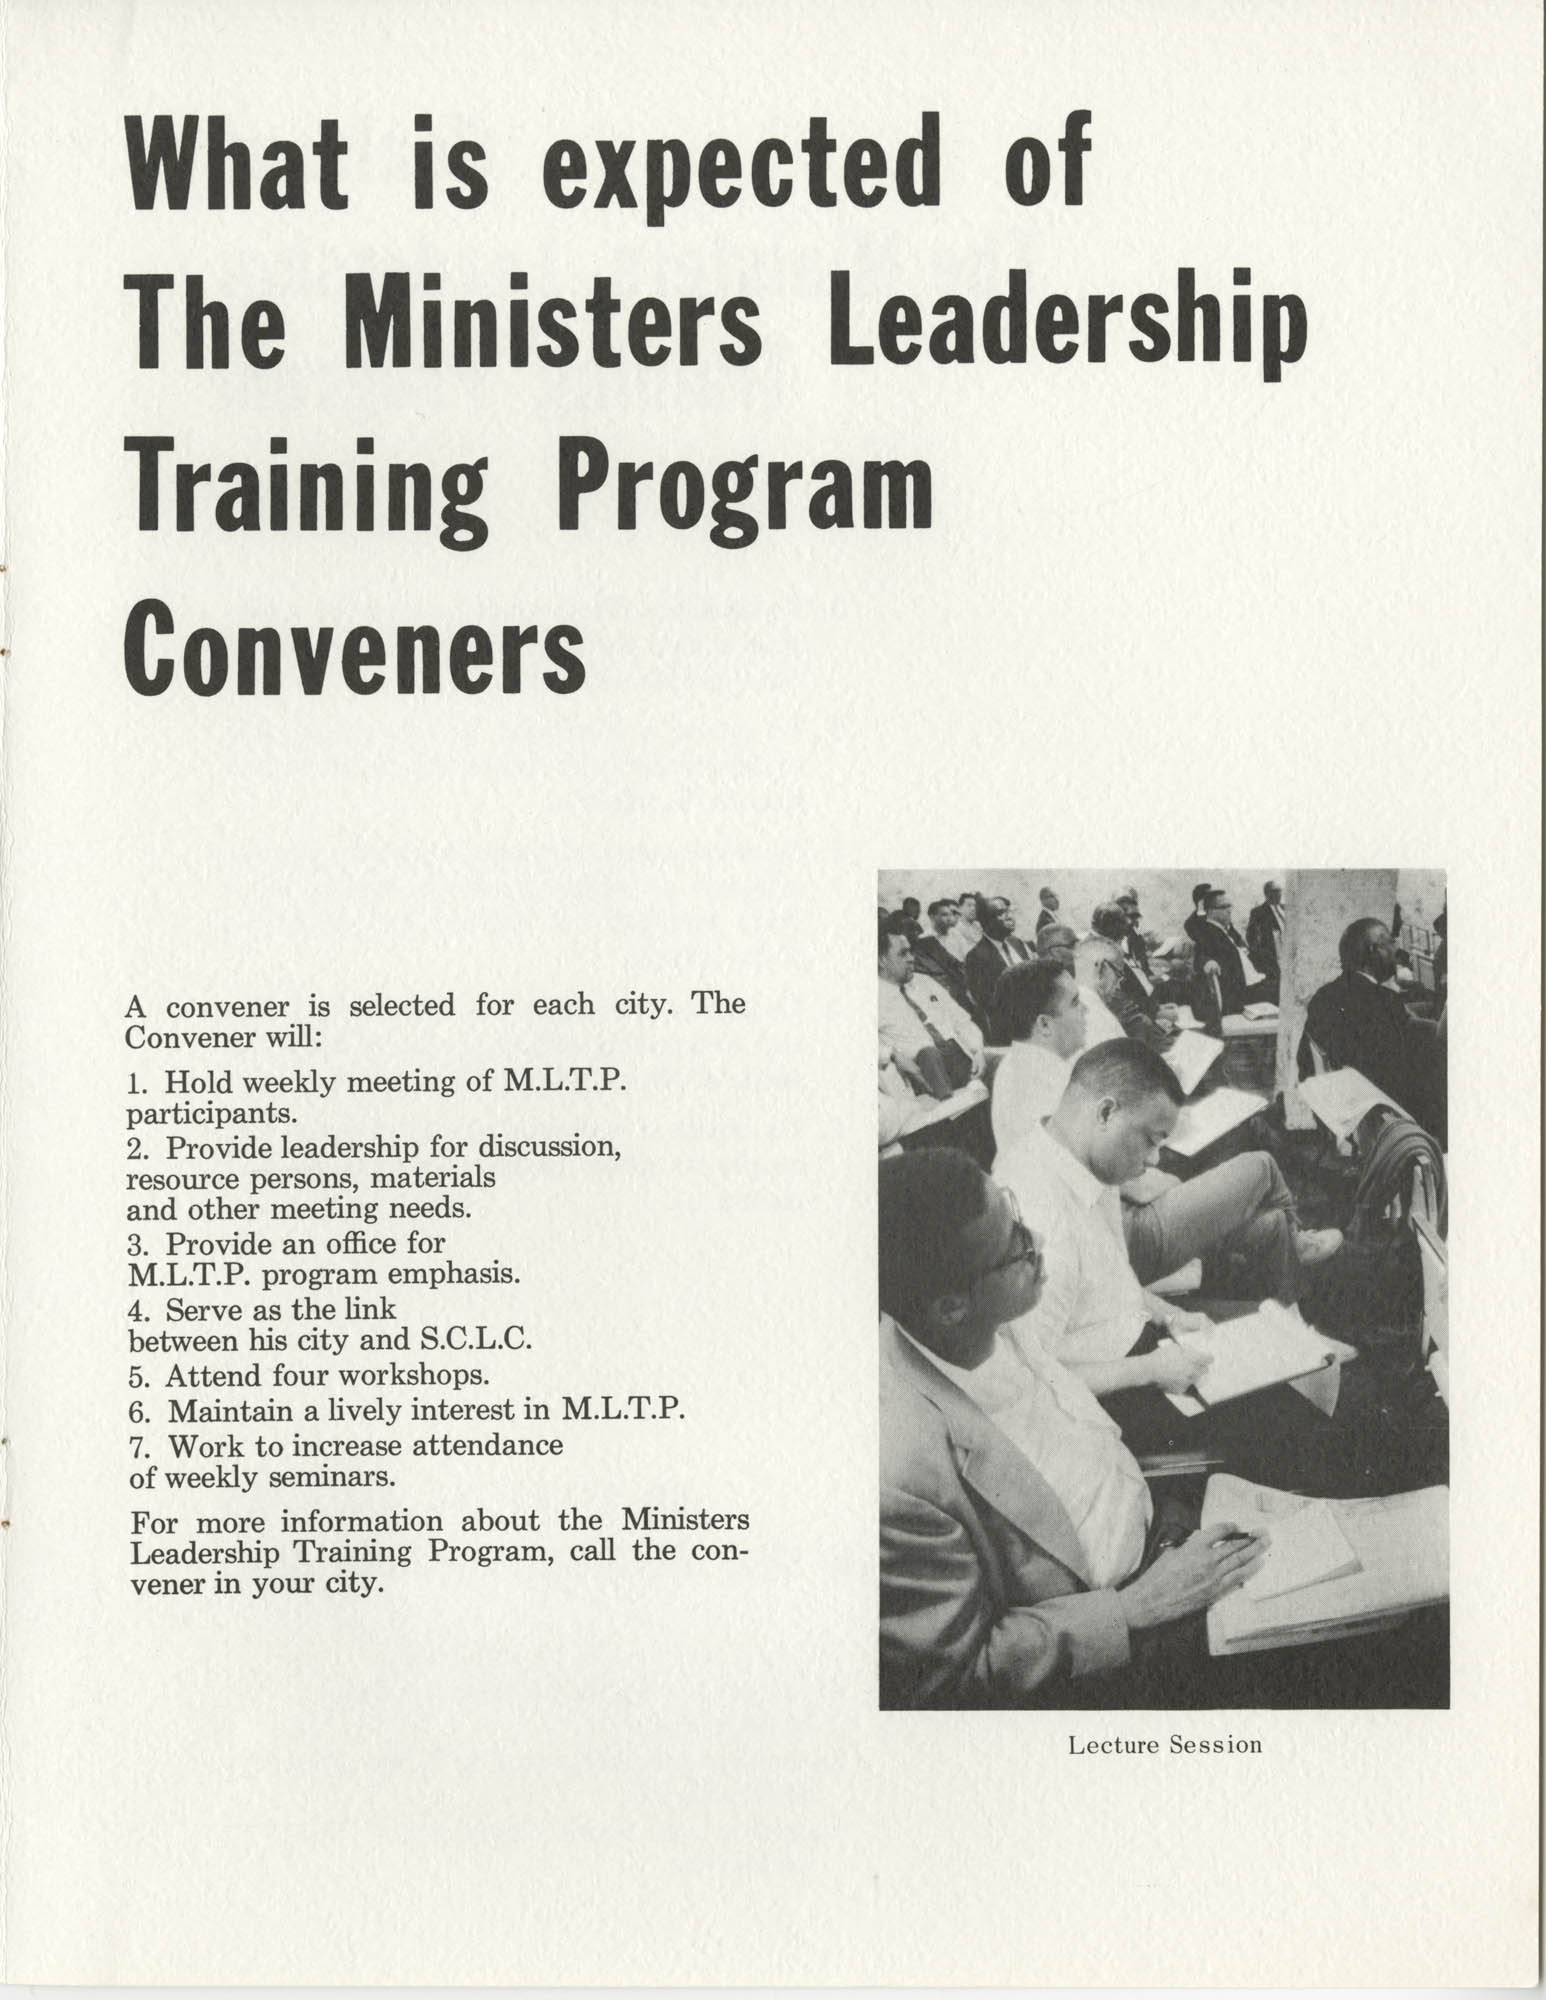 Ministers Leadership Training Program, Page 8